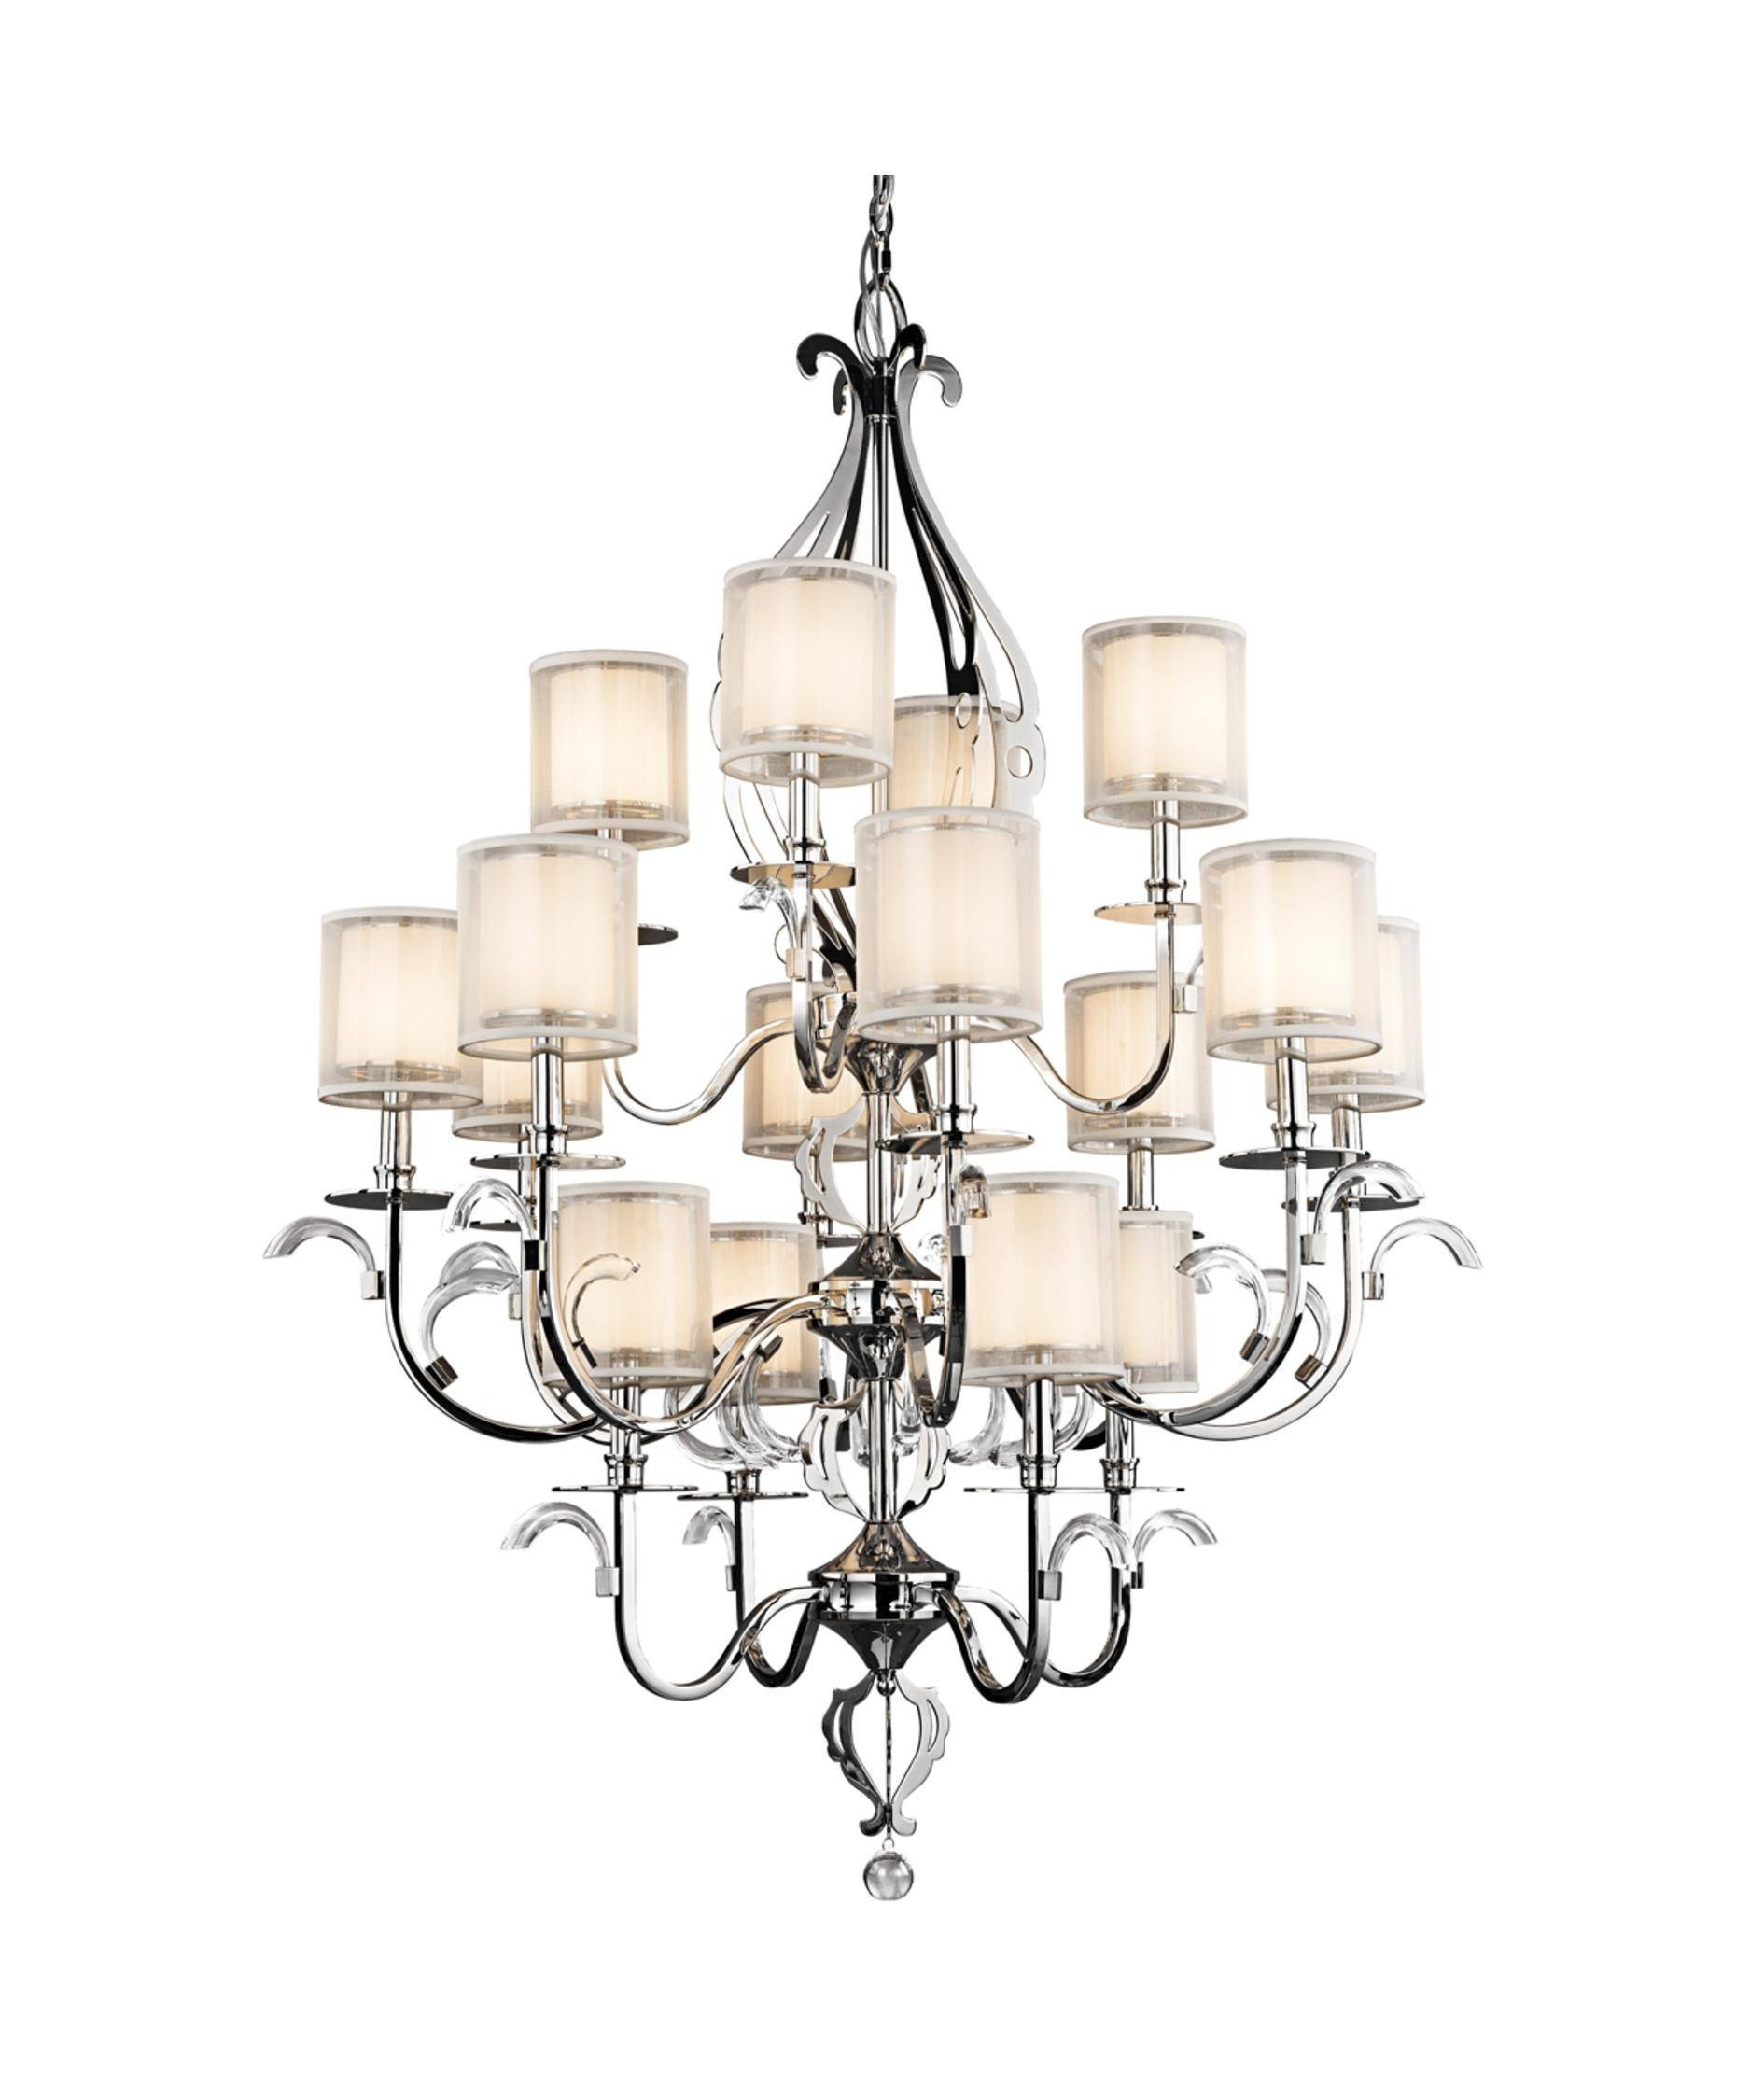 Chic Chandelier With Matching Pendant Lights Pendant Light with regard to Matching Pendant Lights and Chandeliers (Image 6 of 15)